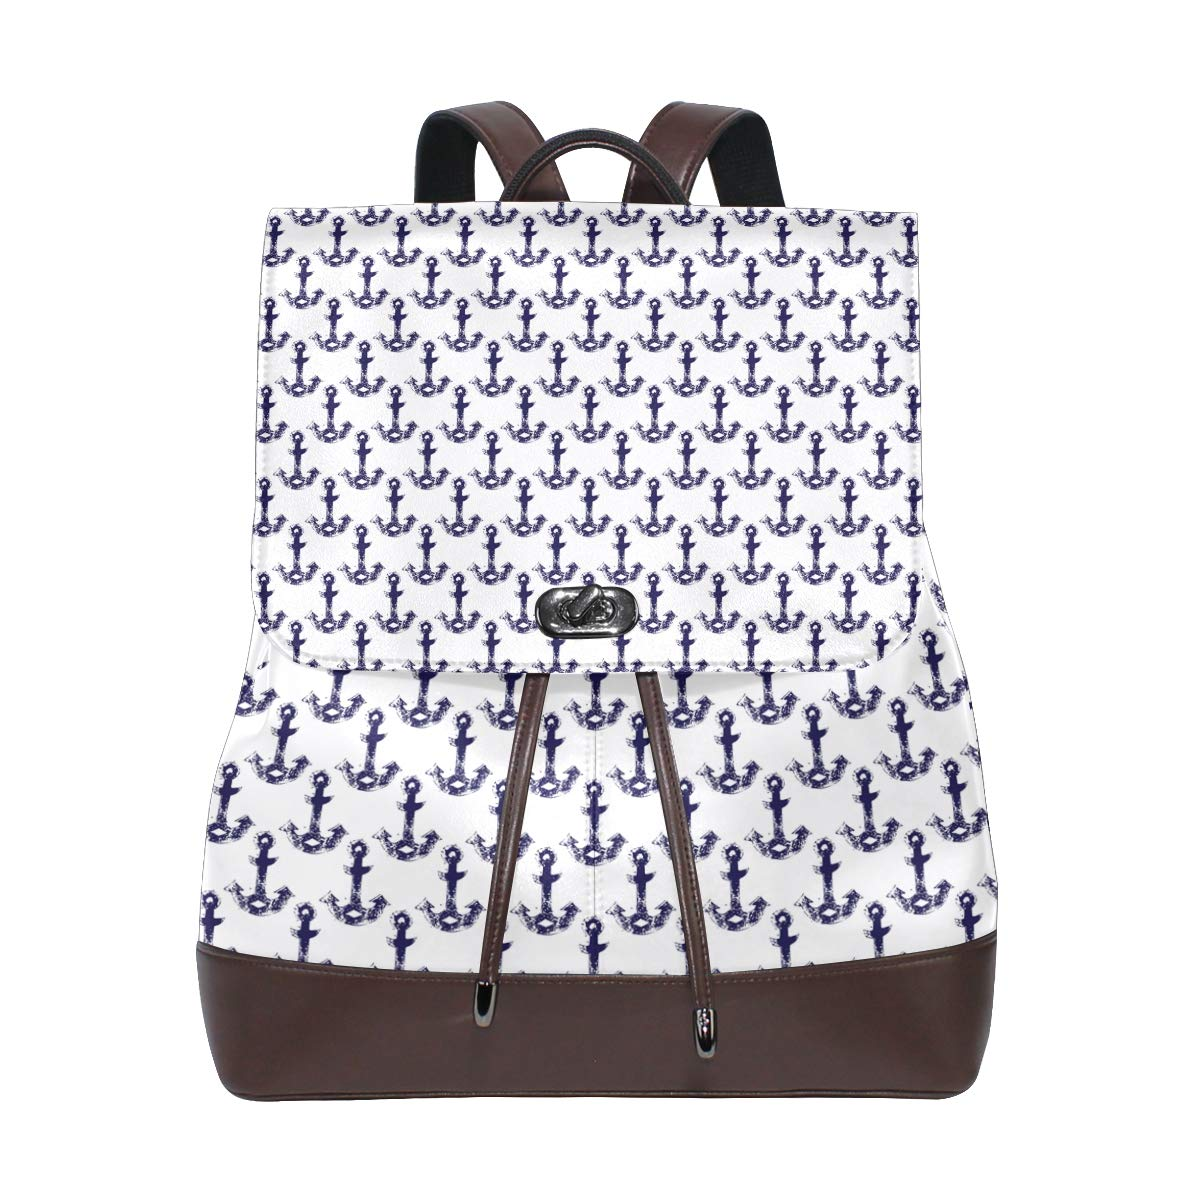 Leather Ananchors In Navy Blue And White Backpack Daypack Elegant Ladies Travel Bag Women Men